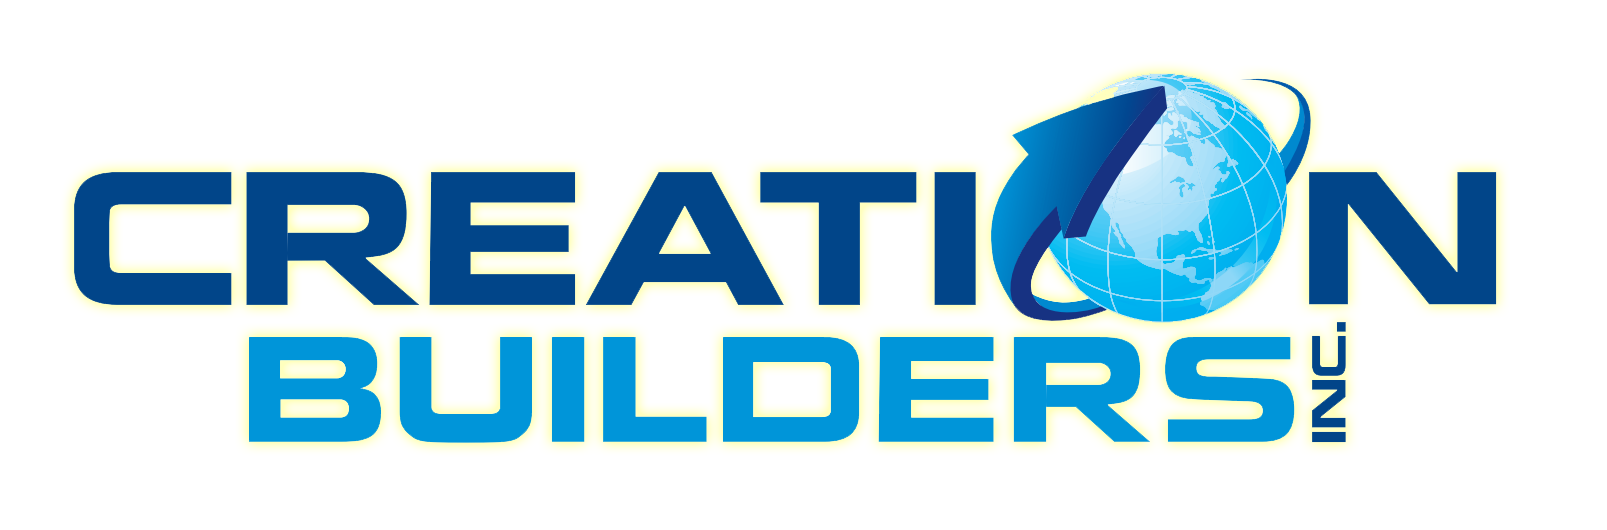 Creation Builders Inc In Woodland Hills Ca 91364 Citysearch